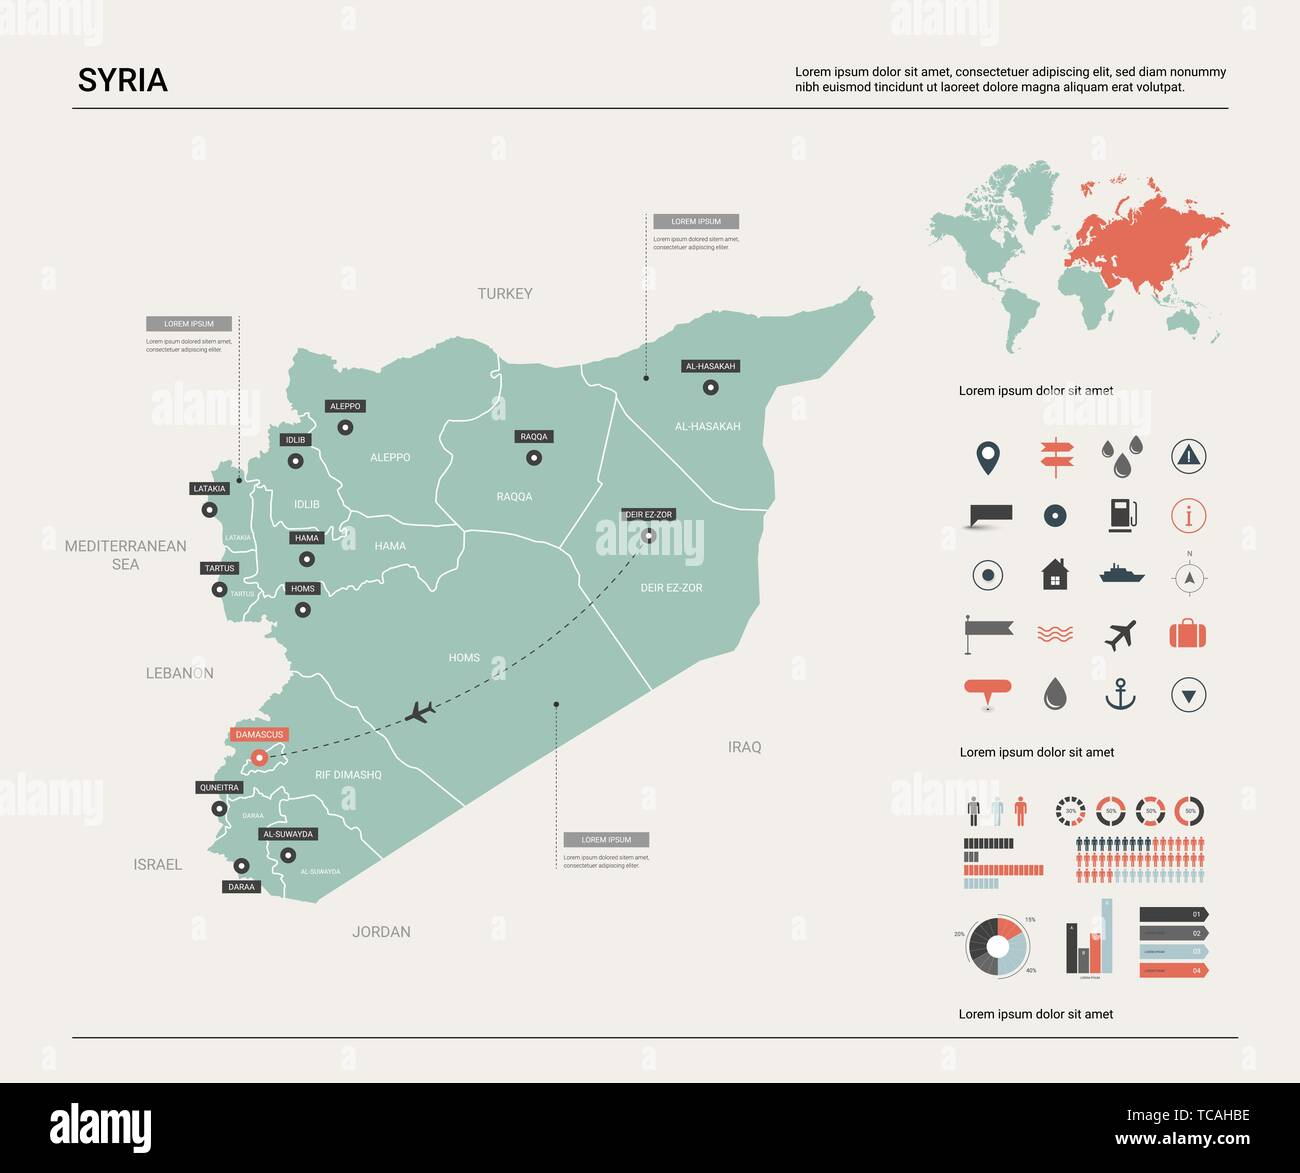 Damascus Map on